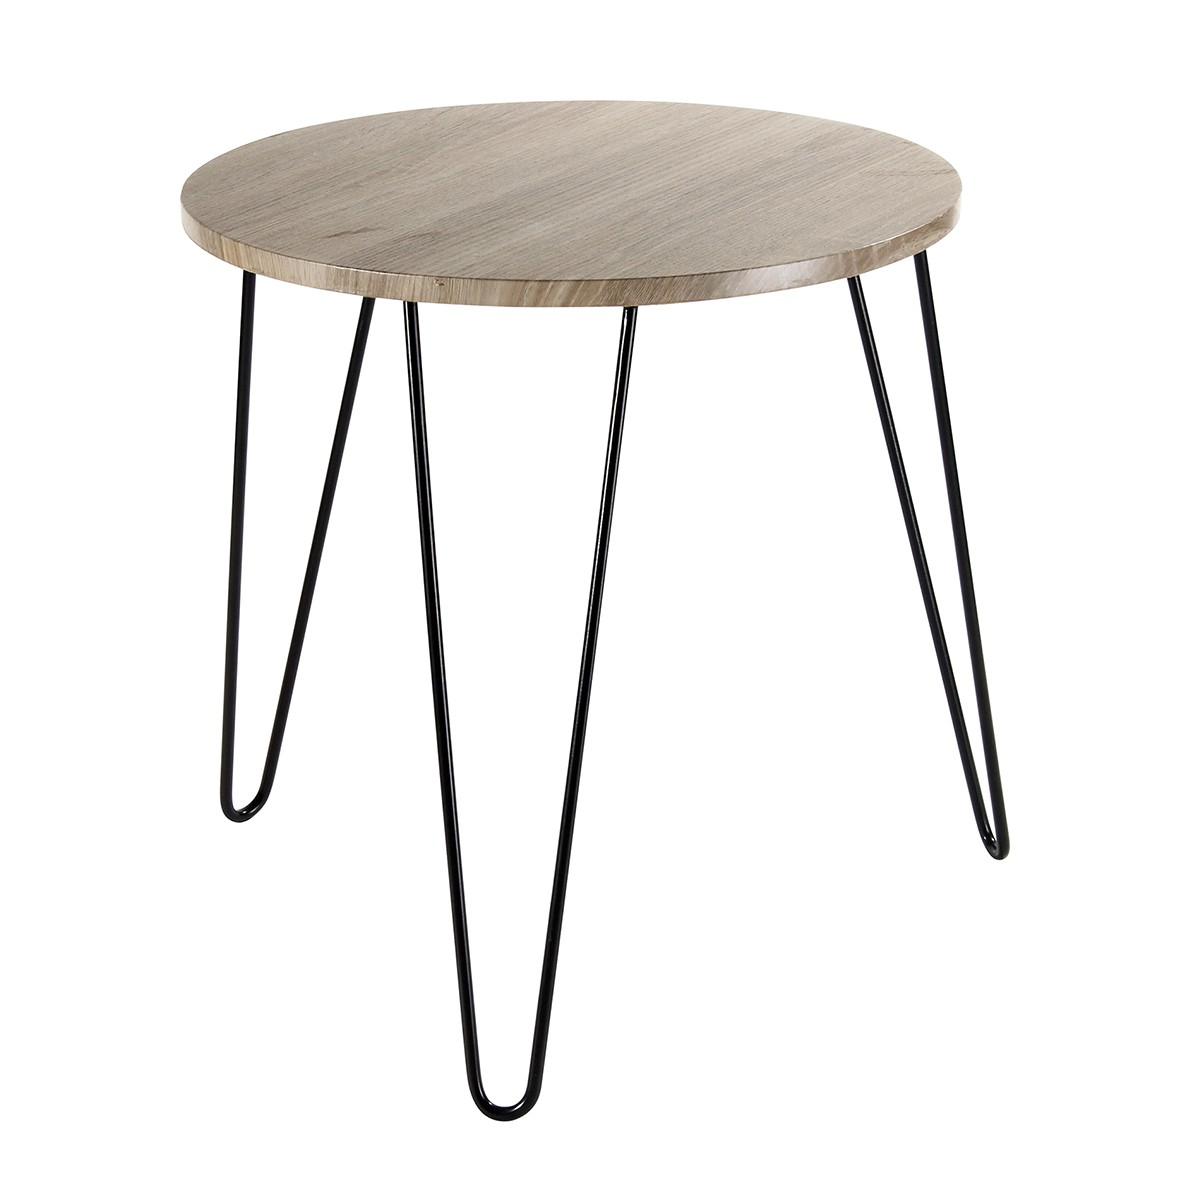 Table basse bois pied metal